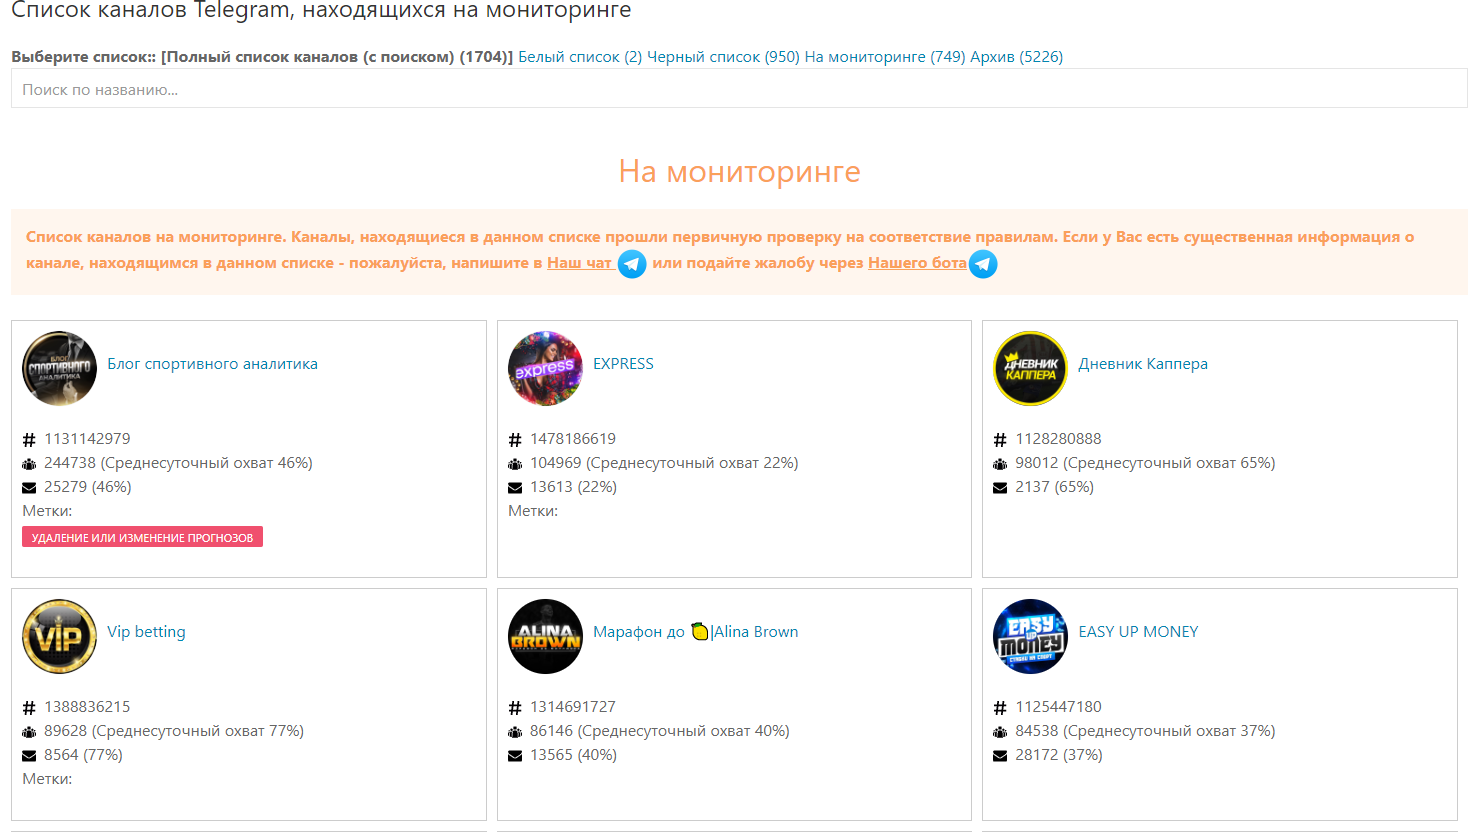 monitoringbet каналы на мониторинге